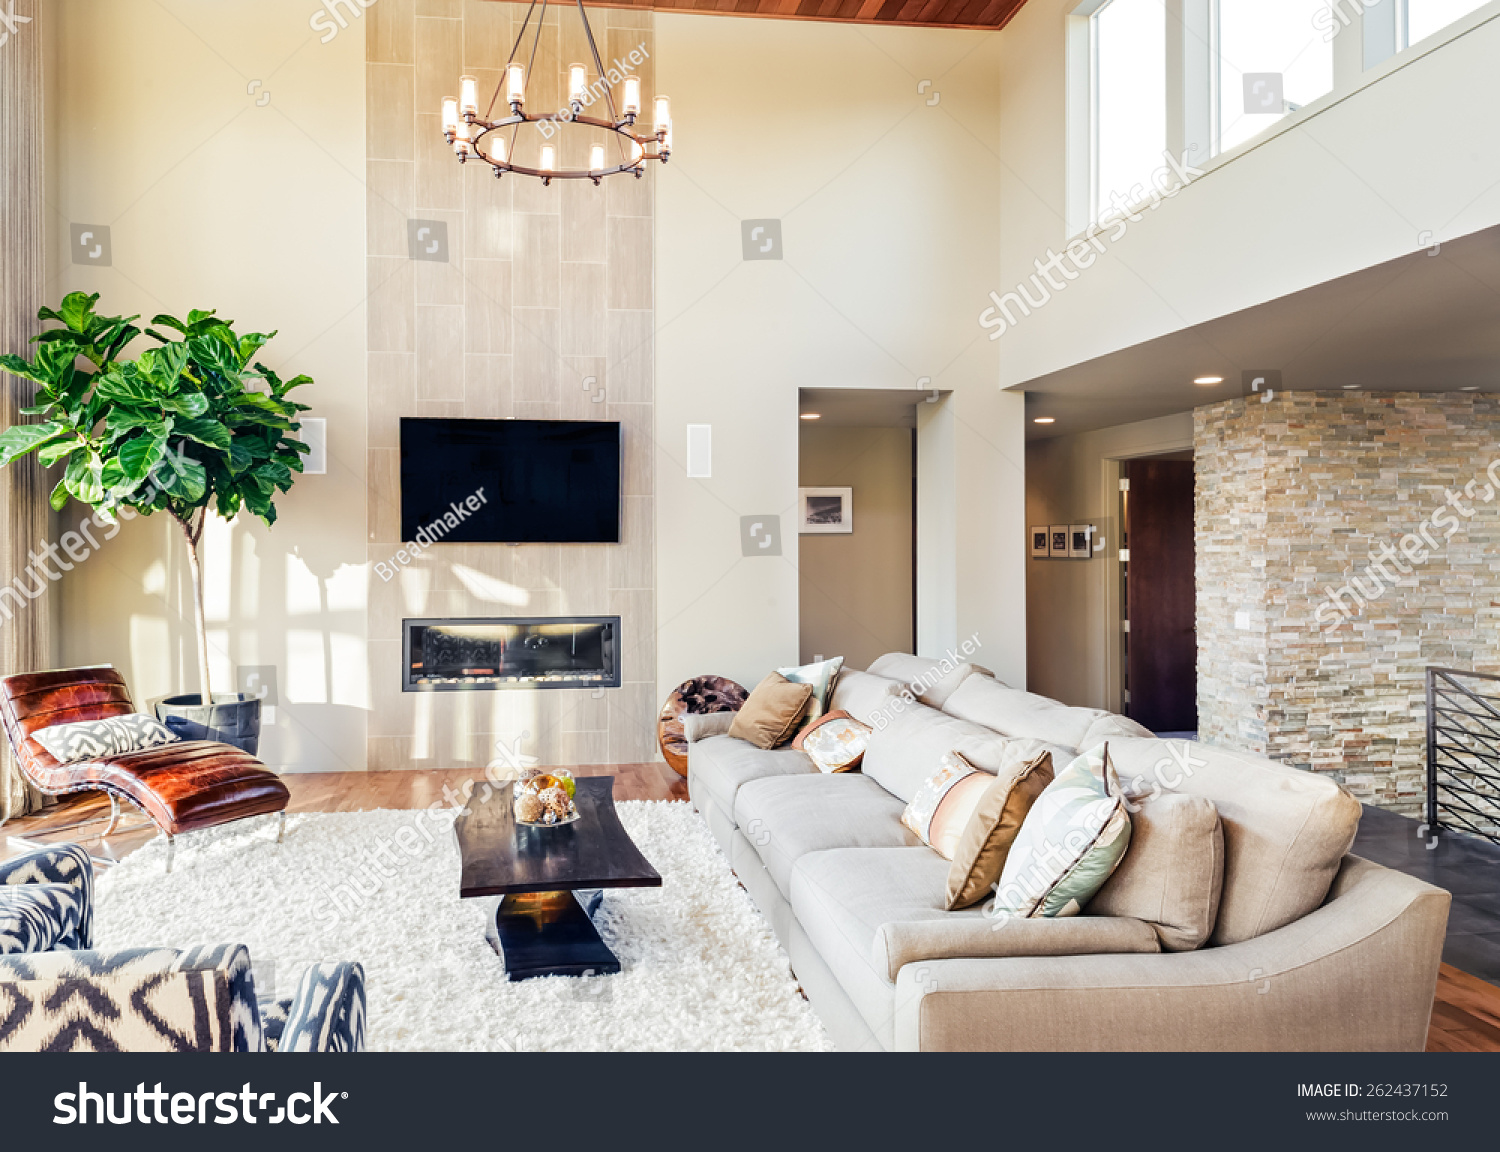 Beautiful Living Room With Hardwood Floors Tv Chandelier And Fireplace